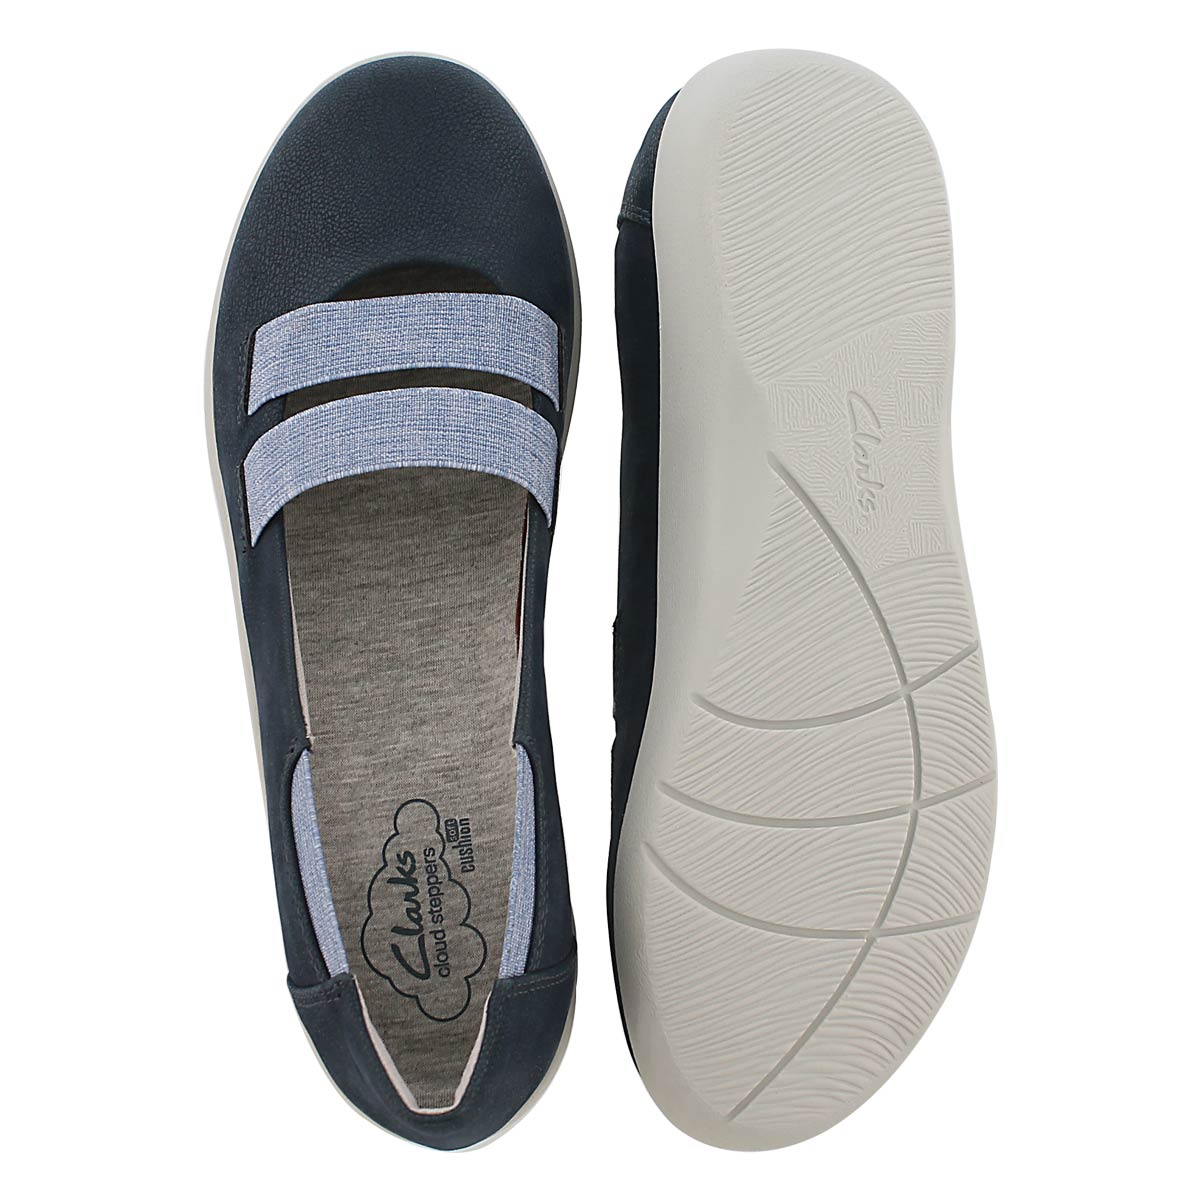 Lds Sillian Rest nvy slip on casual shoe